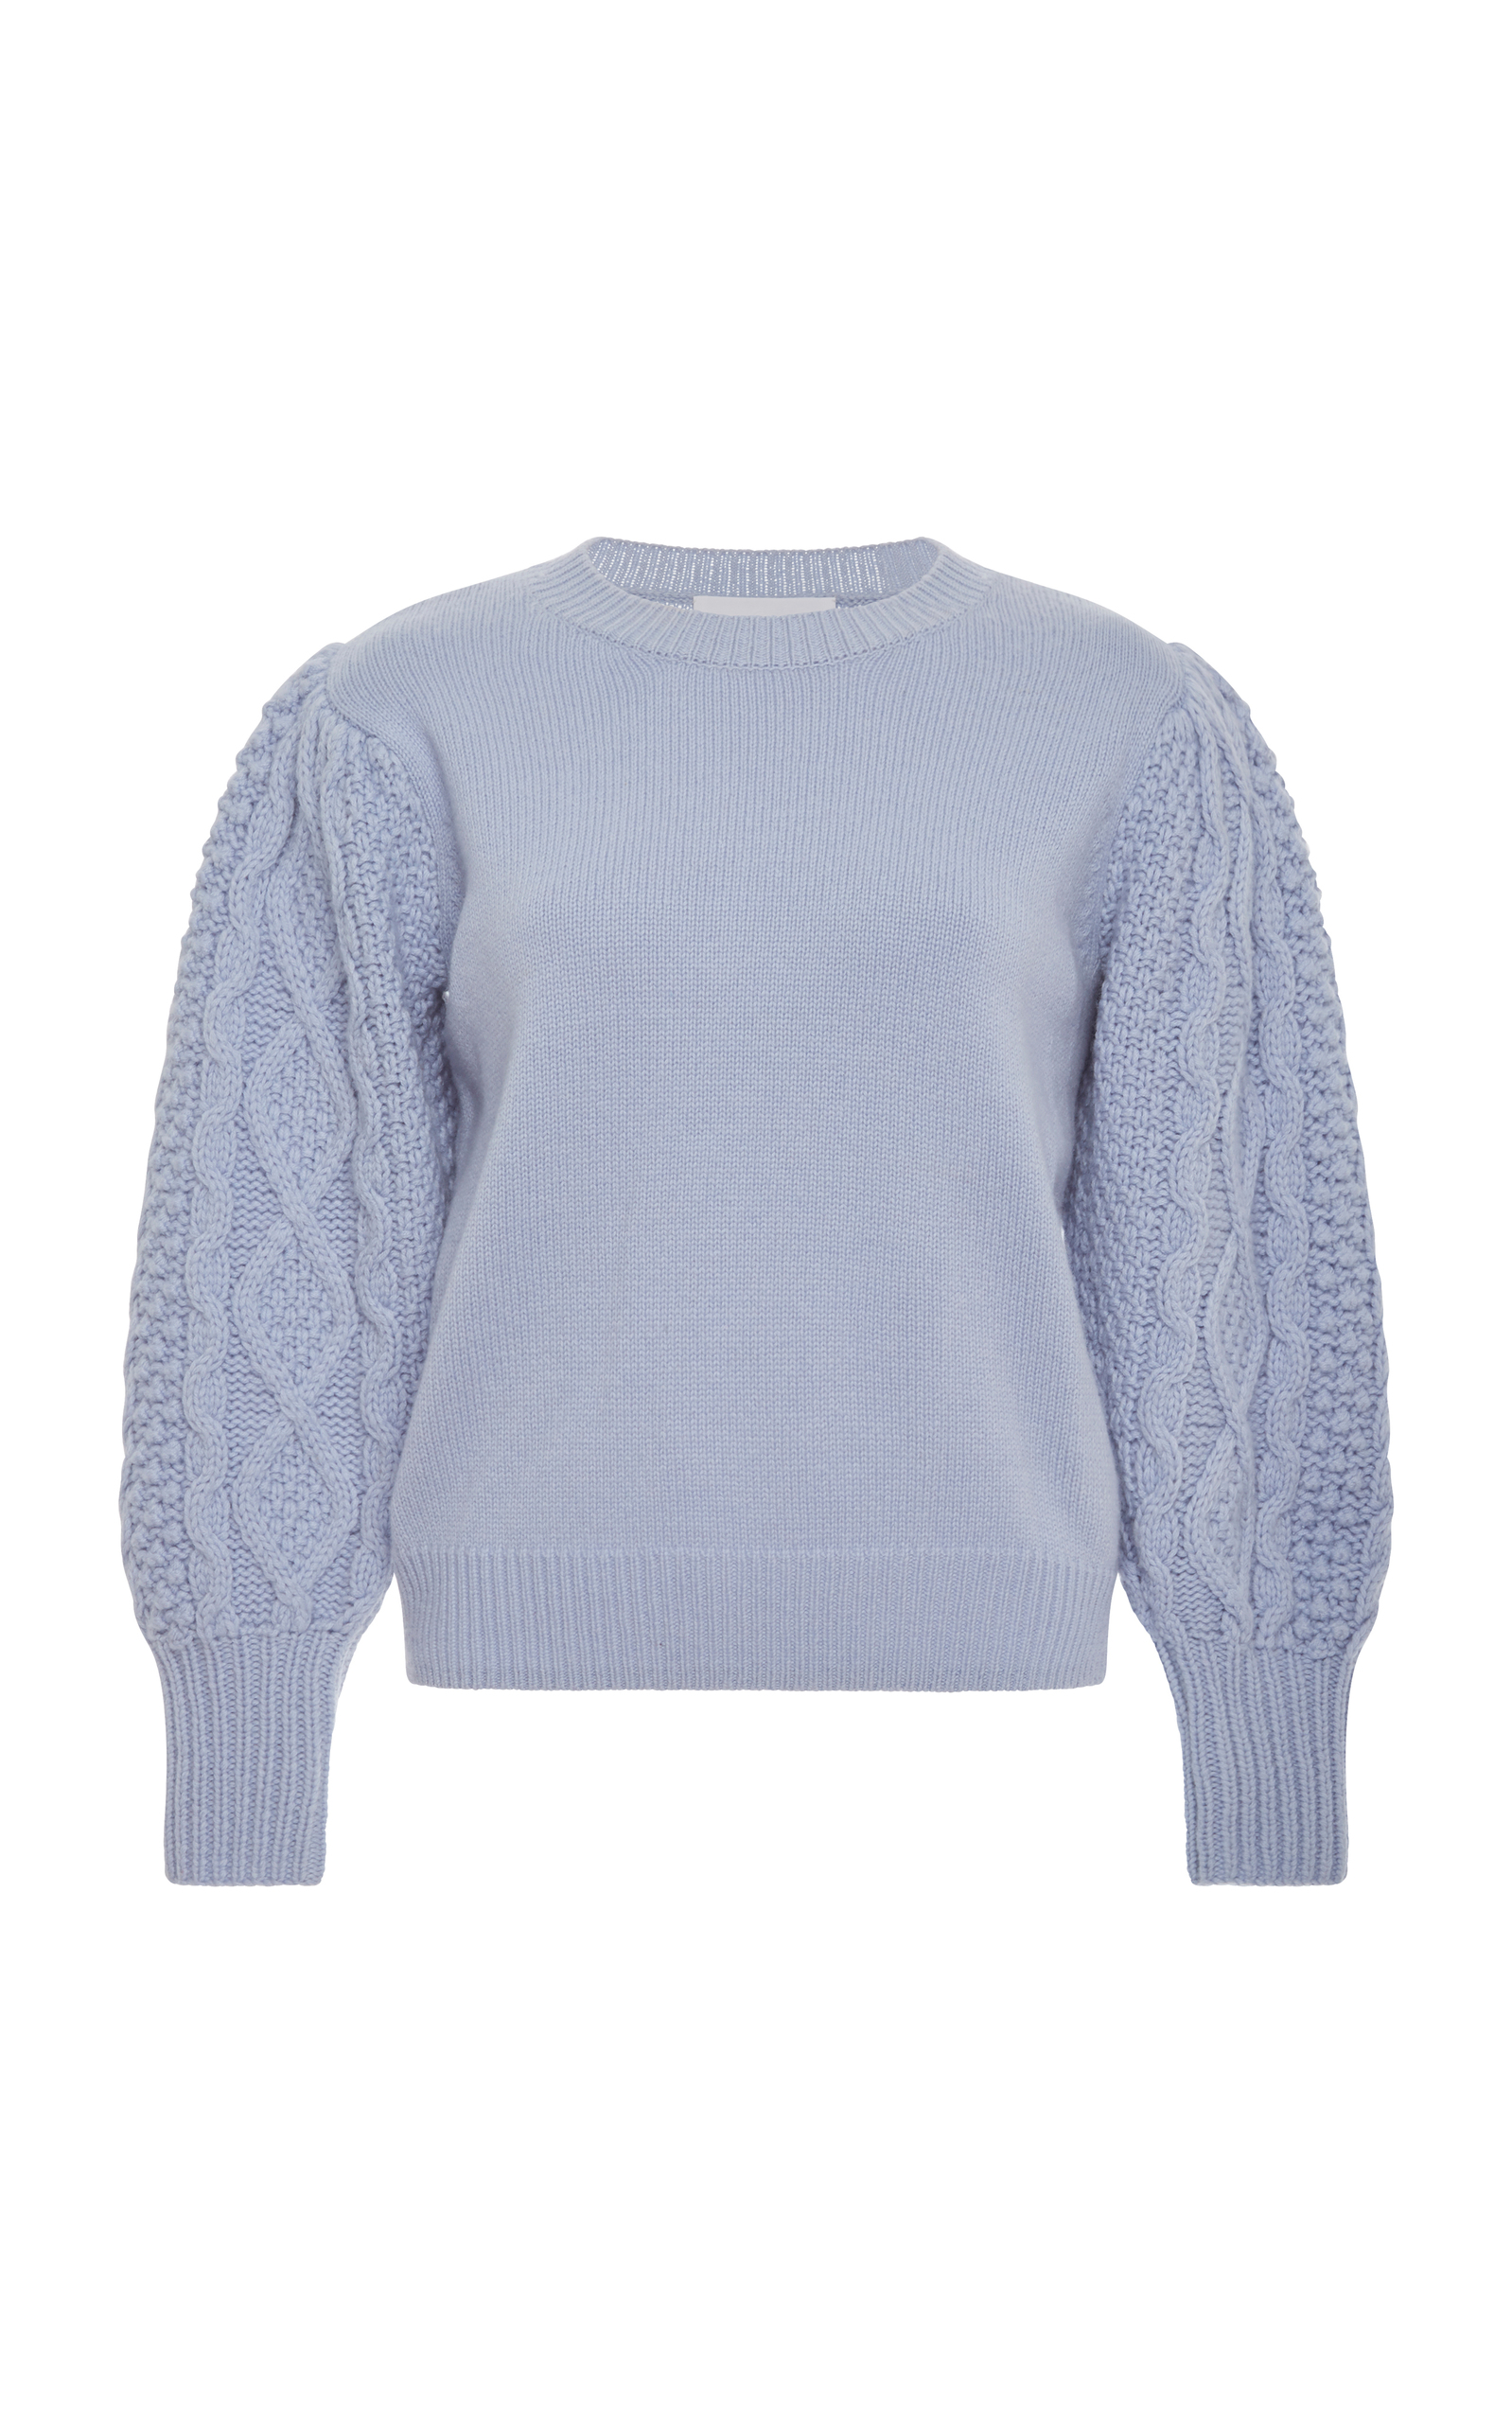 CABLE-KNIT-SLEEVE WOOL-CASHMERE SWEATER